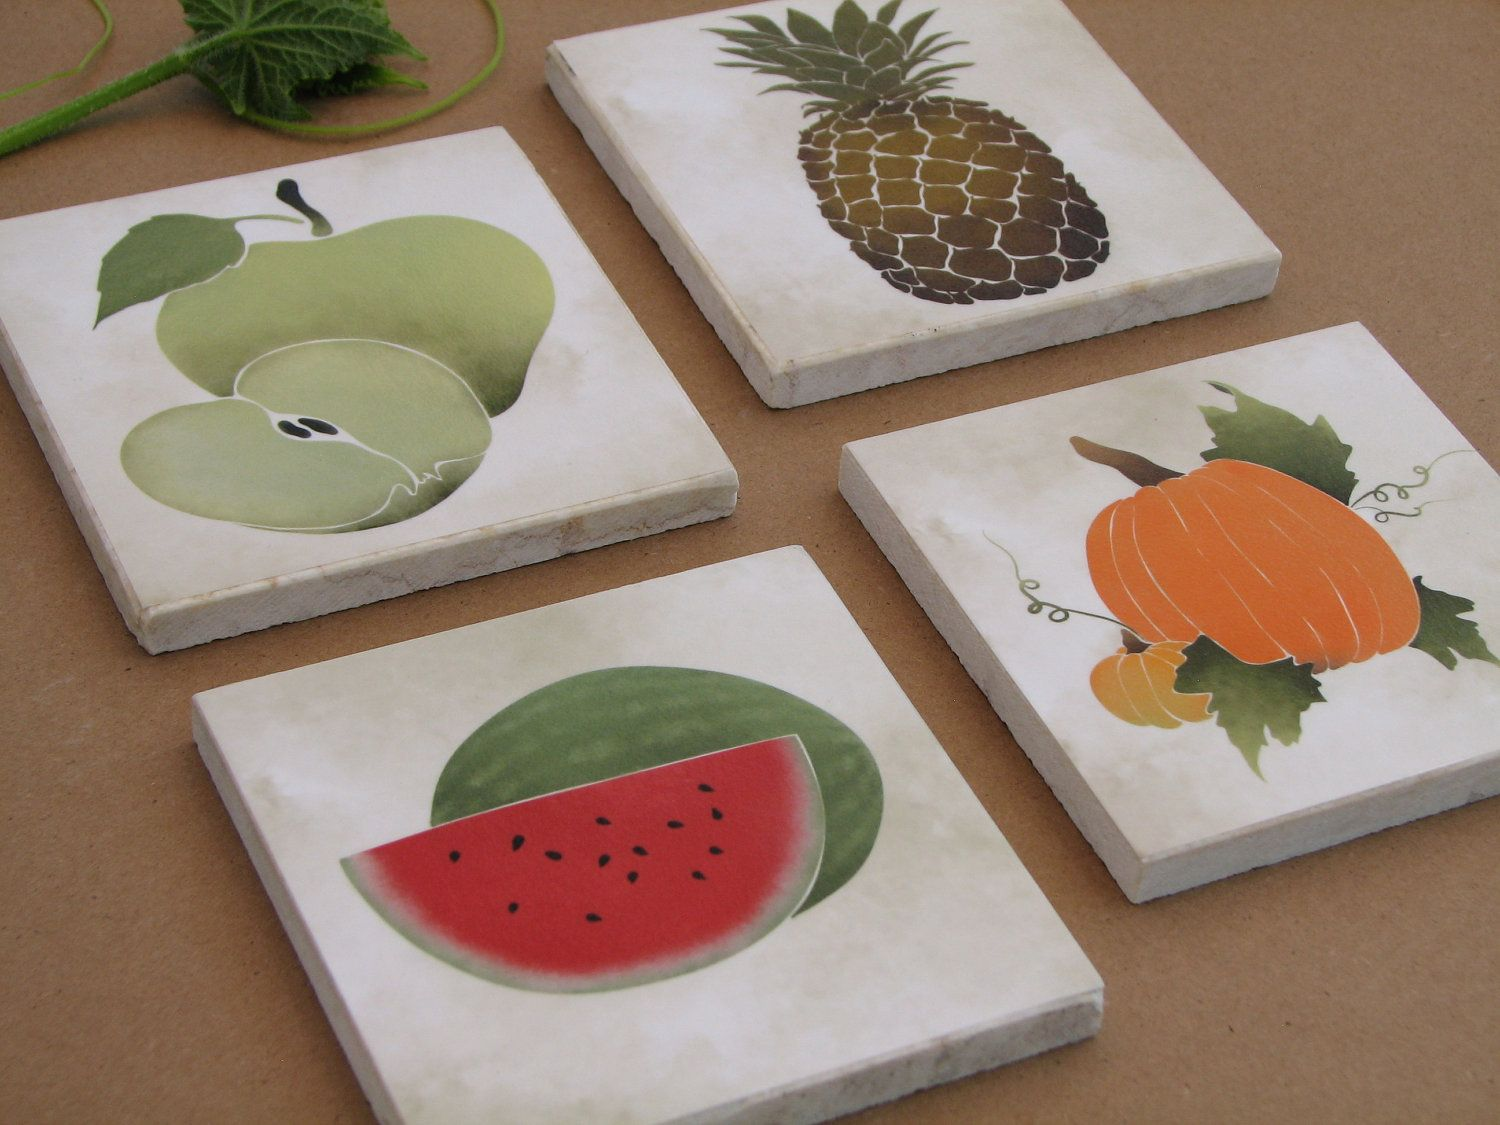 Fruit and vegetable wall art kitchen wall decor hanging fruit and vegetable wall art kitchen wall decor hanging decorative tile amipublicfo Gallery